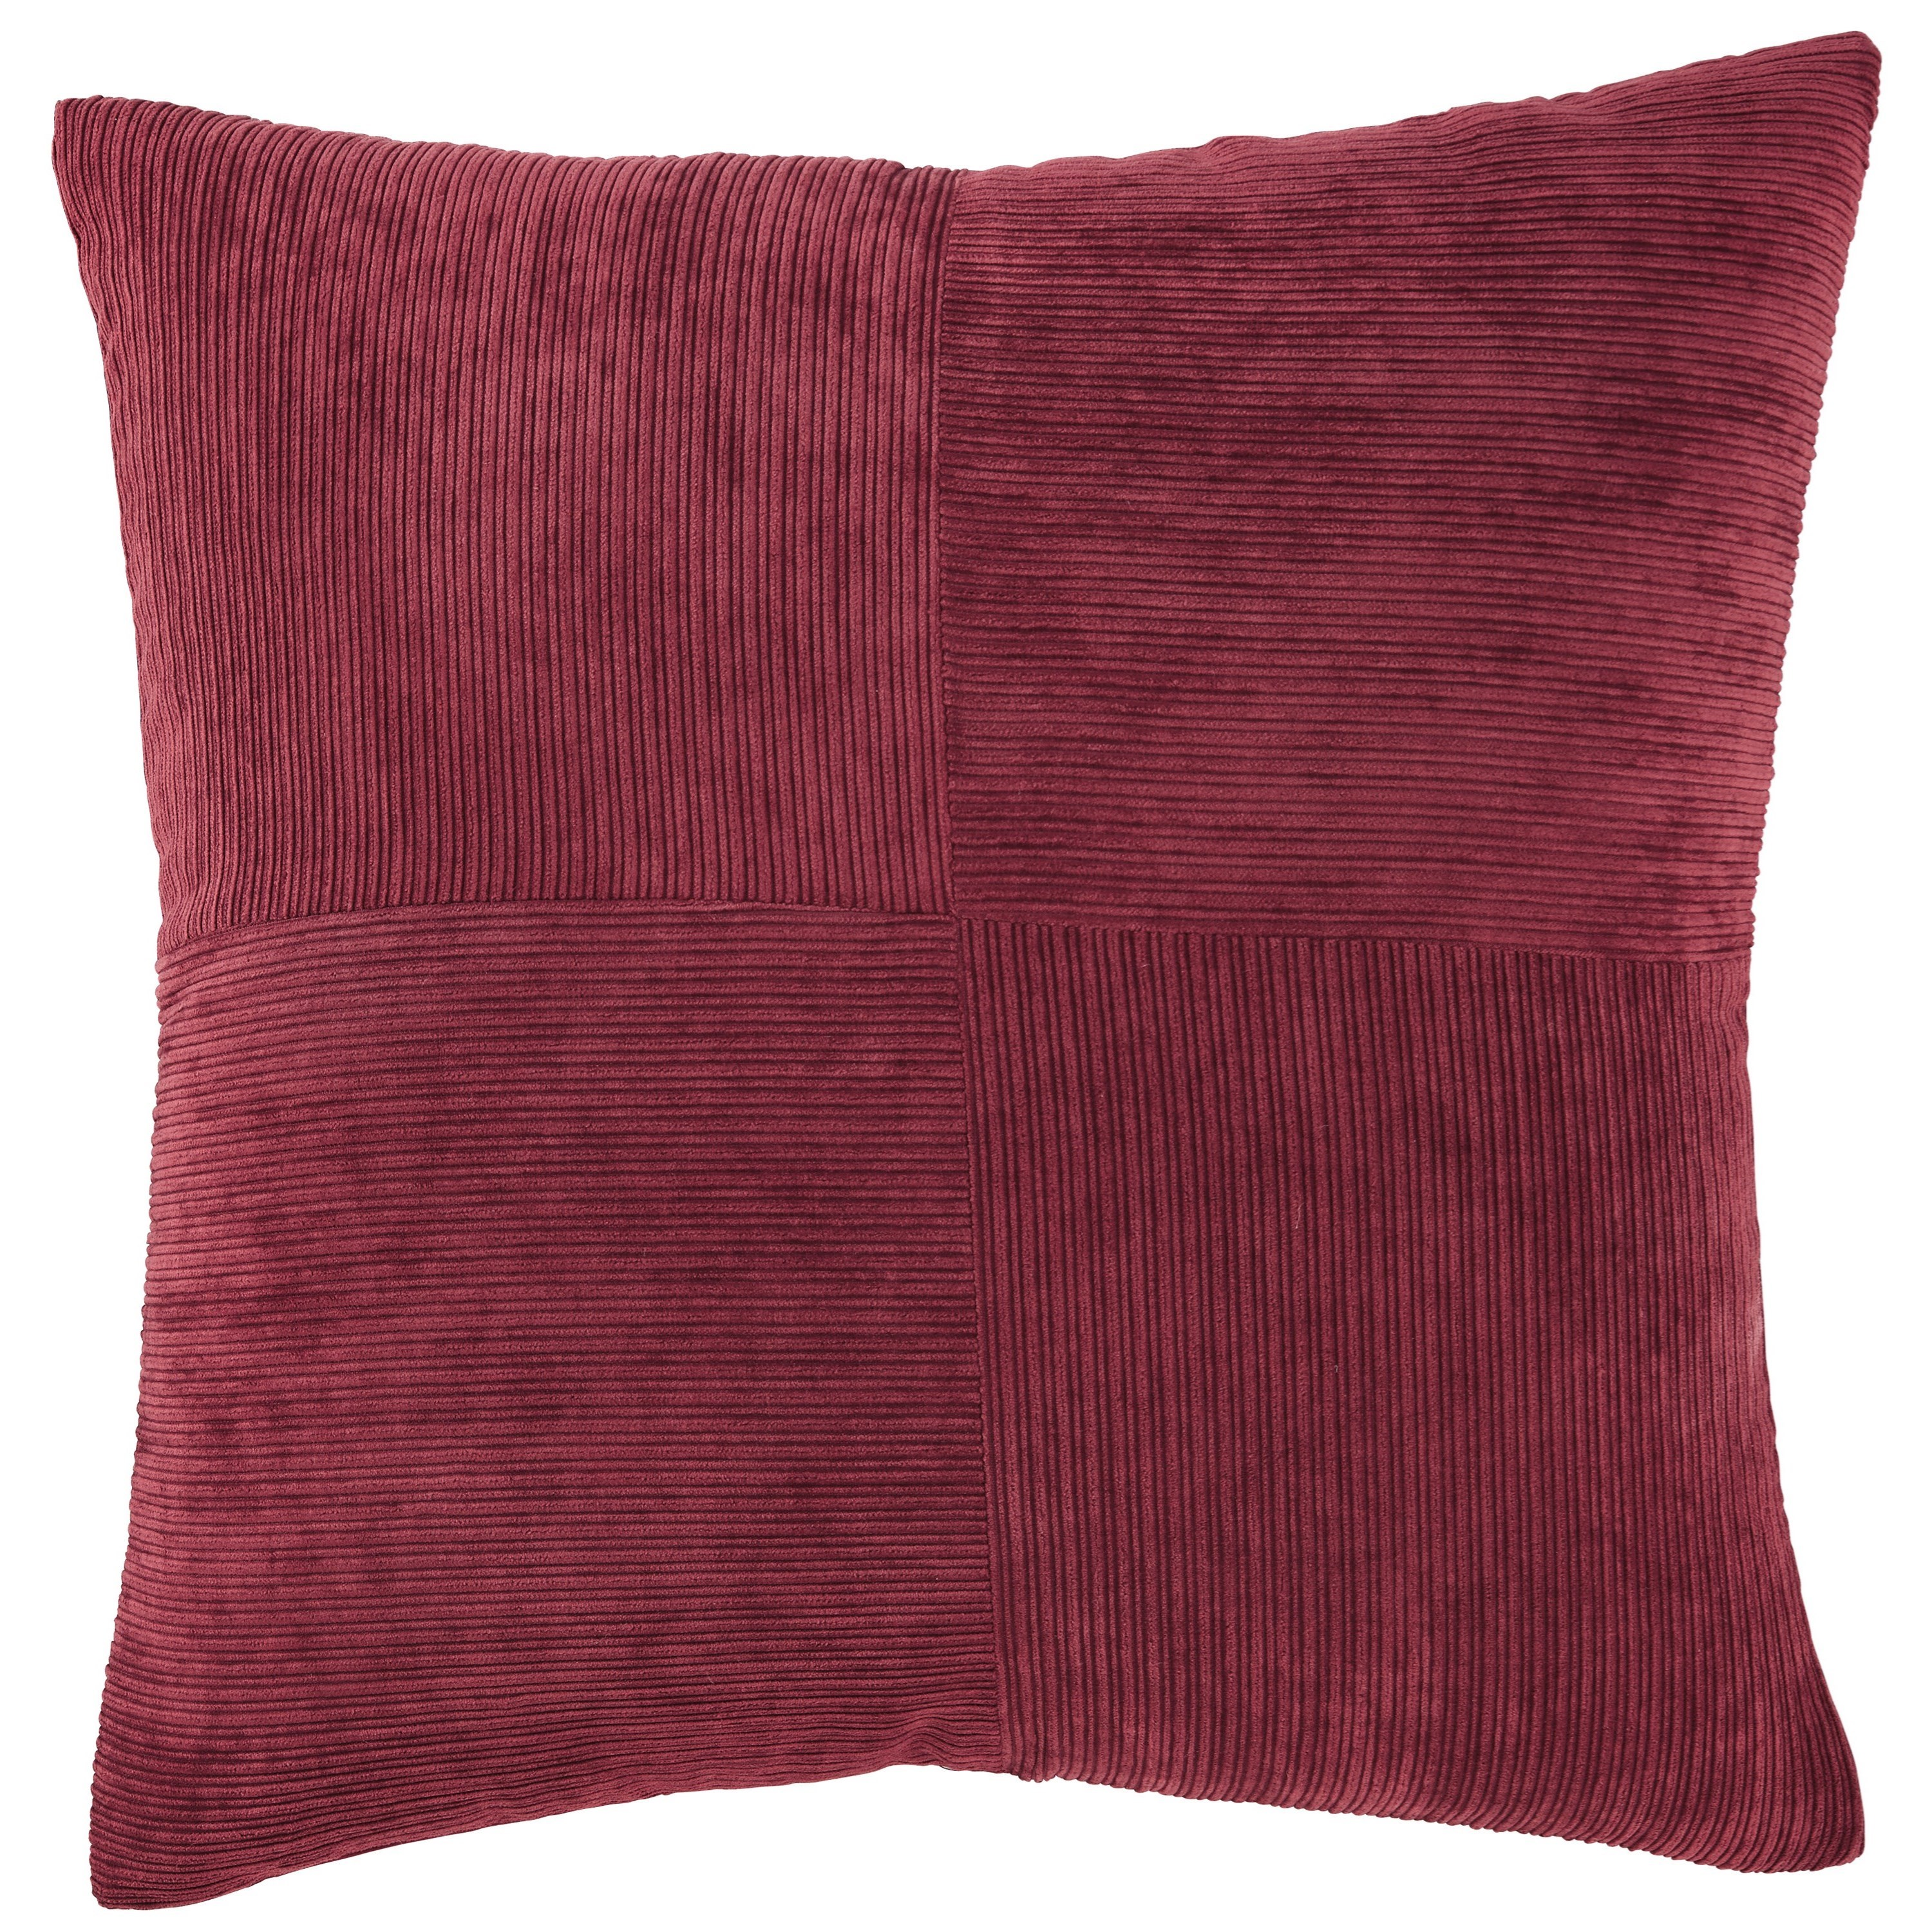 Jinelle Brick Red Pillow